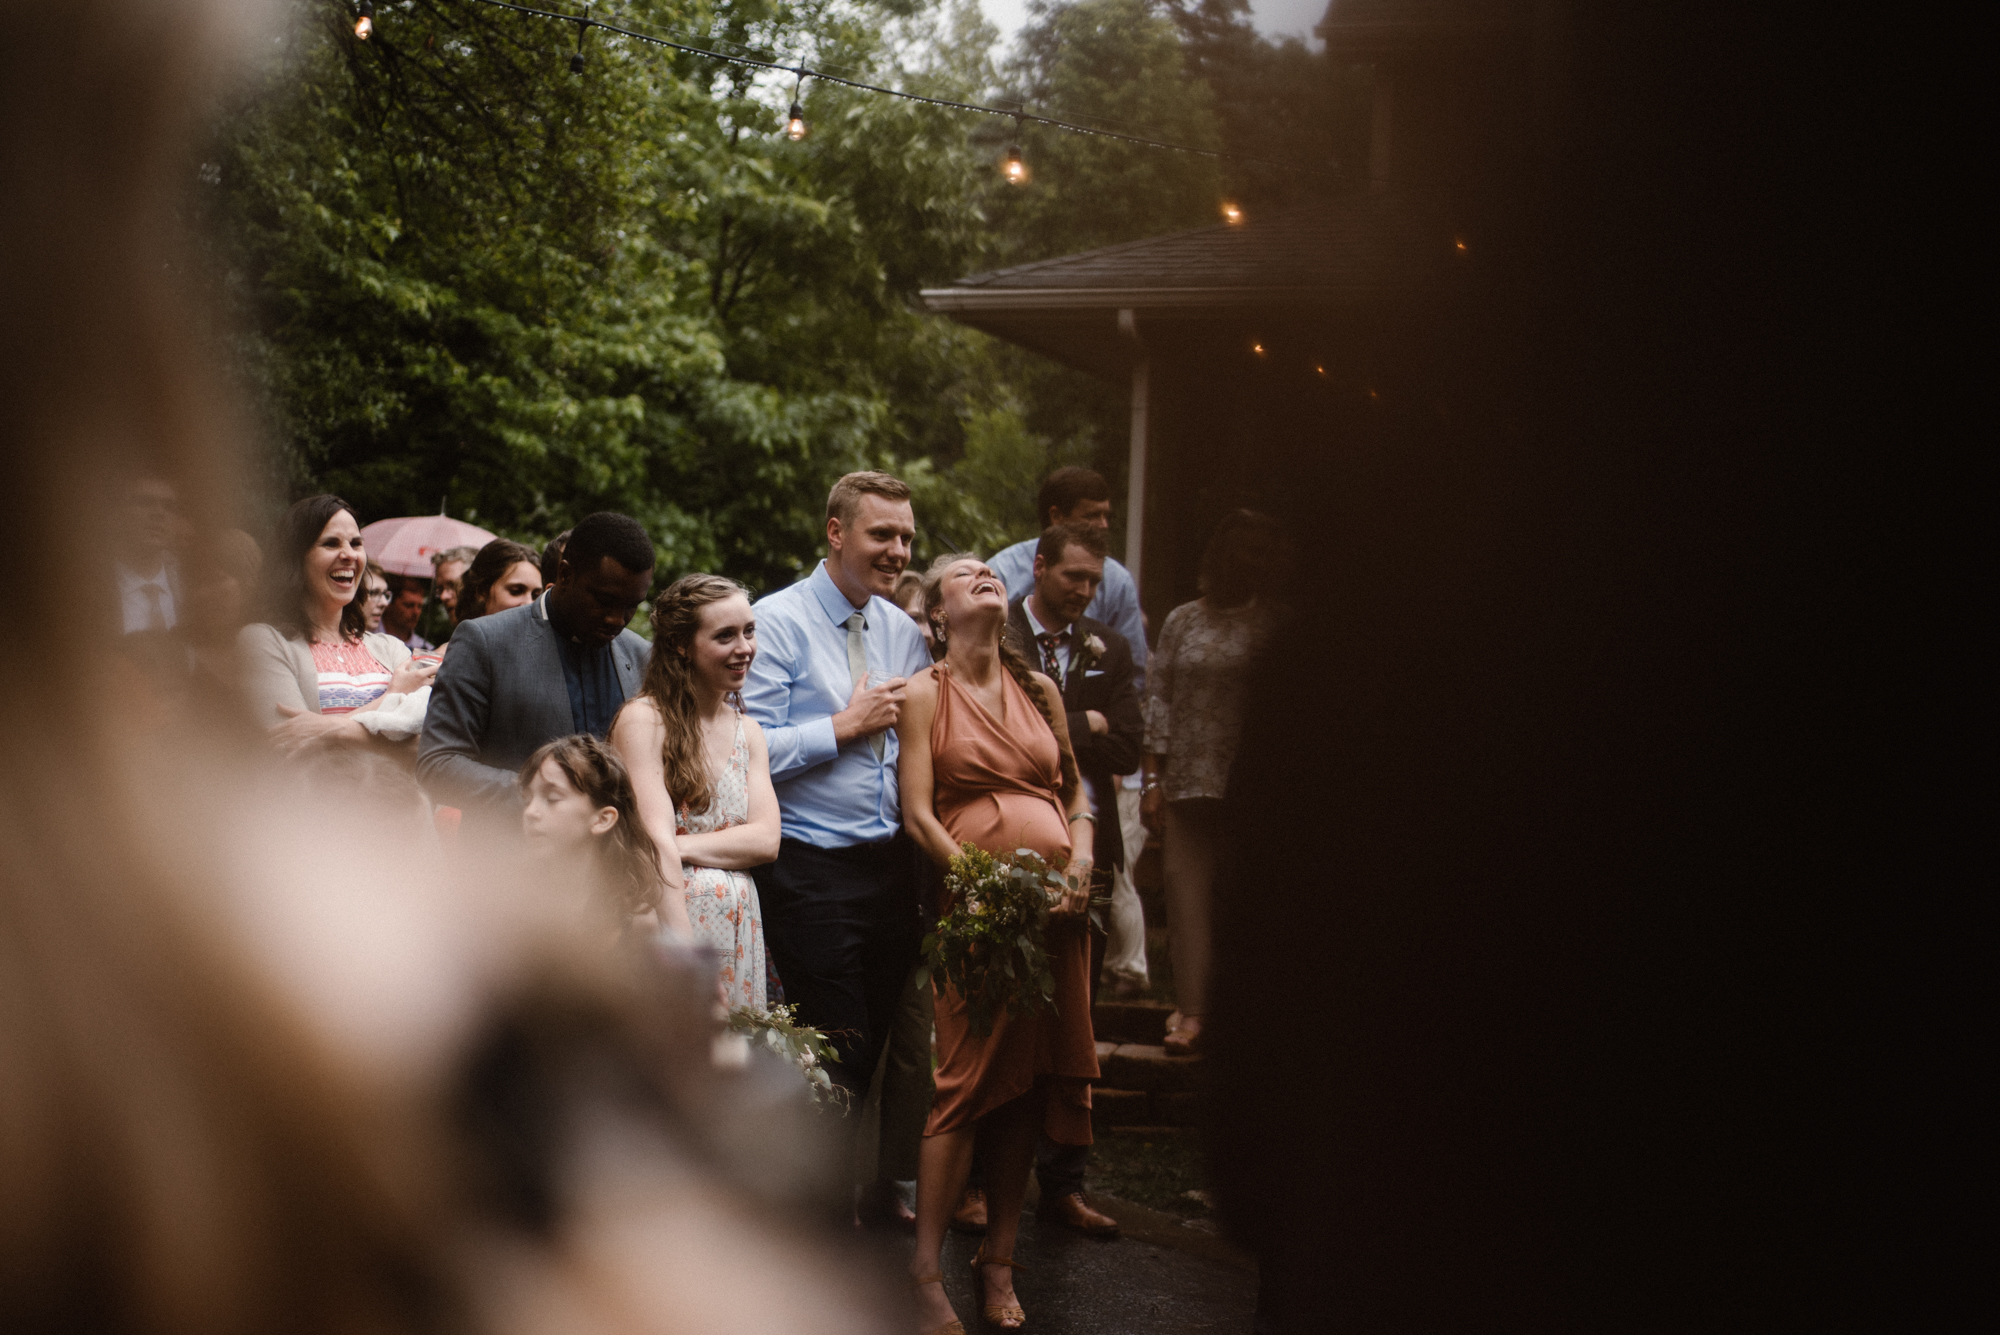 Mairi and Jude - Rainy Backyard Wedding - Intimate Wedding - Fun Reception Photos - Chicago Wedding Photographer - Catholic Wedding - White Sails Creative - Virginia Backyard Wedding Photographer_49.jpg